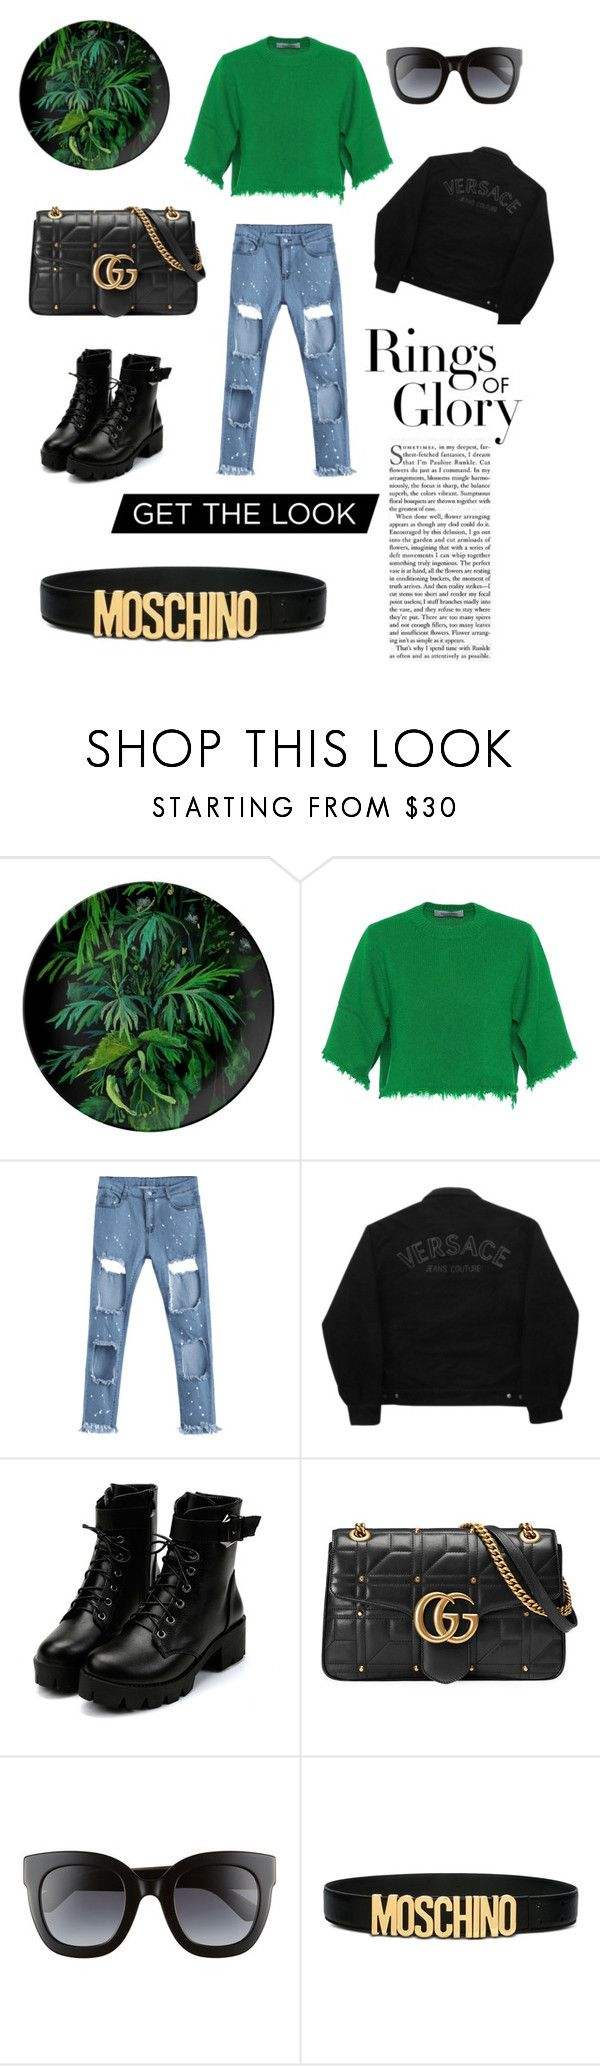 """""""Rings Of Glory"""" by mariavalcerpa ❤ liked on Polyvore featuring Valentino, Versace Jeans Couture, Gucci, Moschino and Tiffany & Co."""